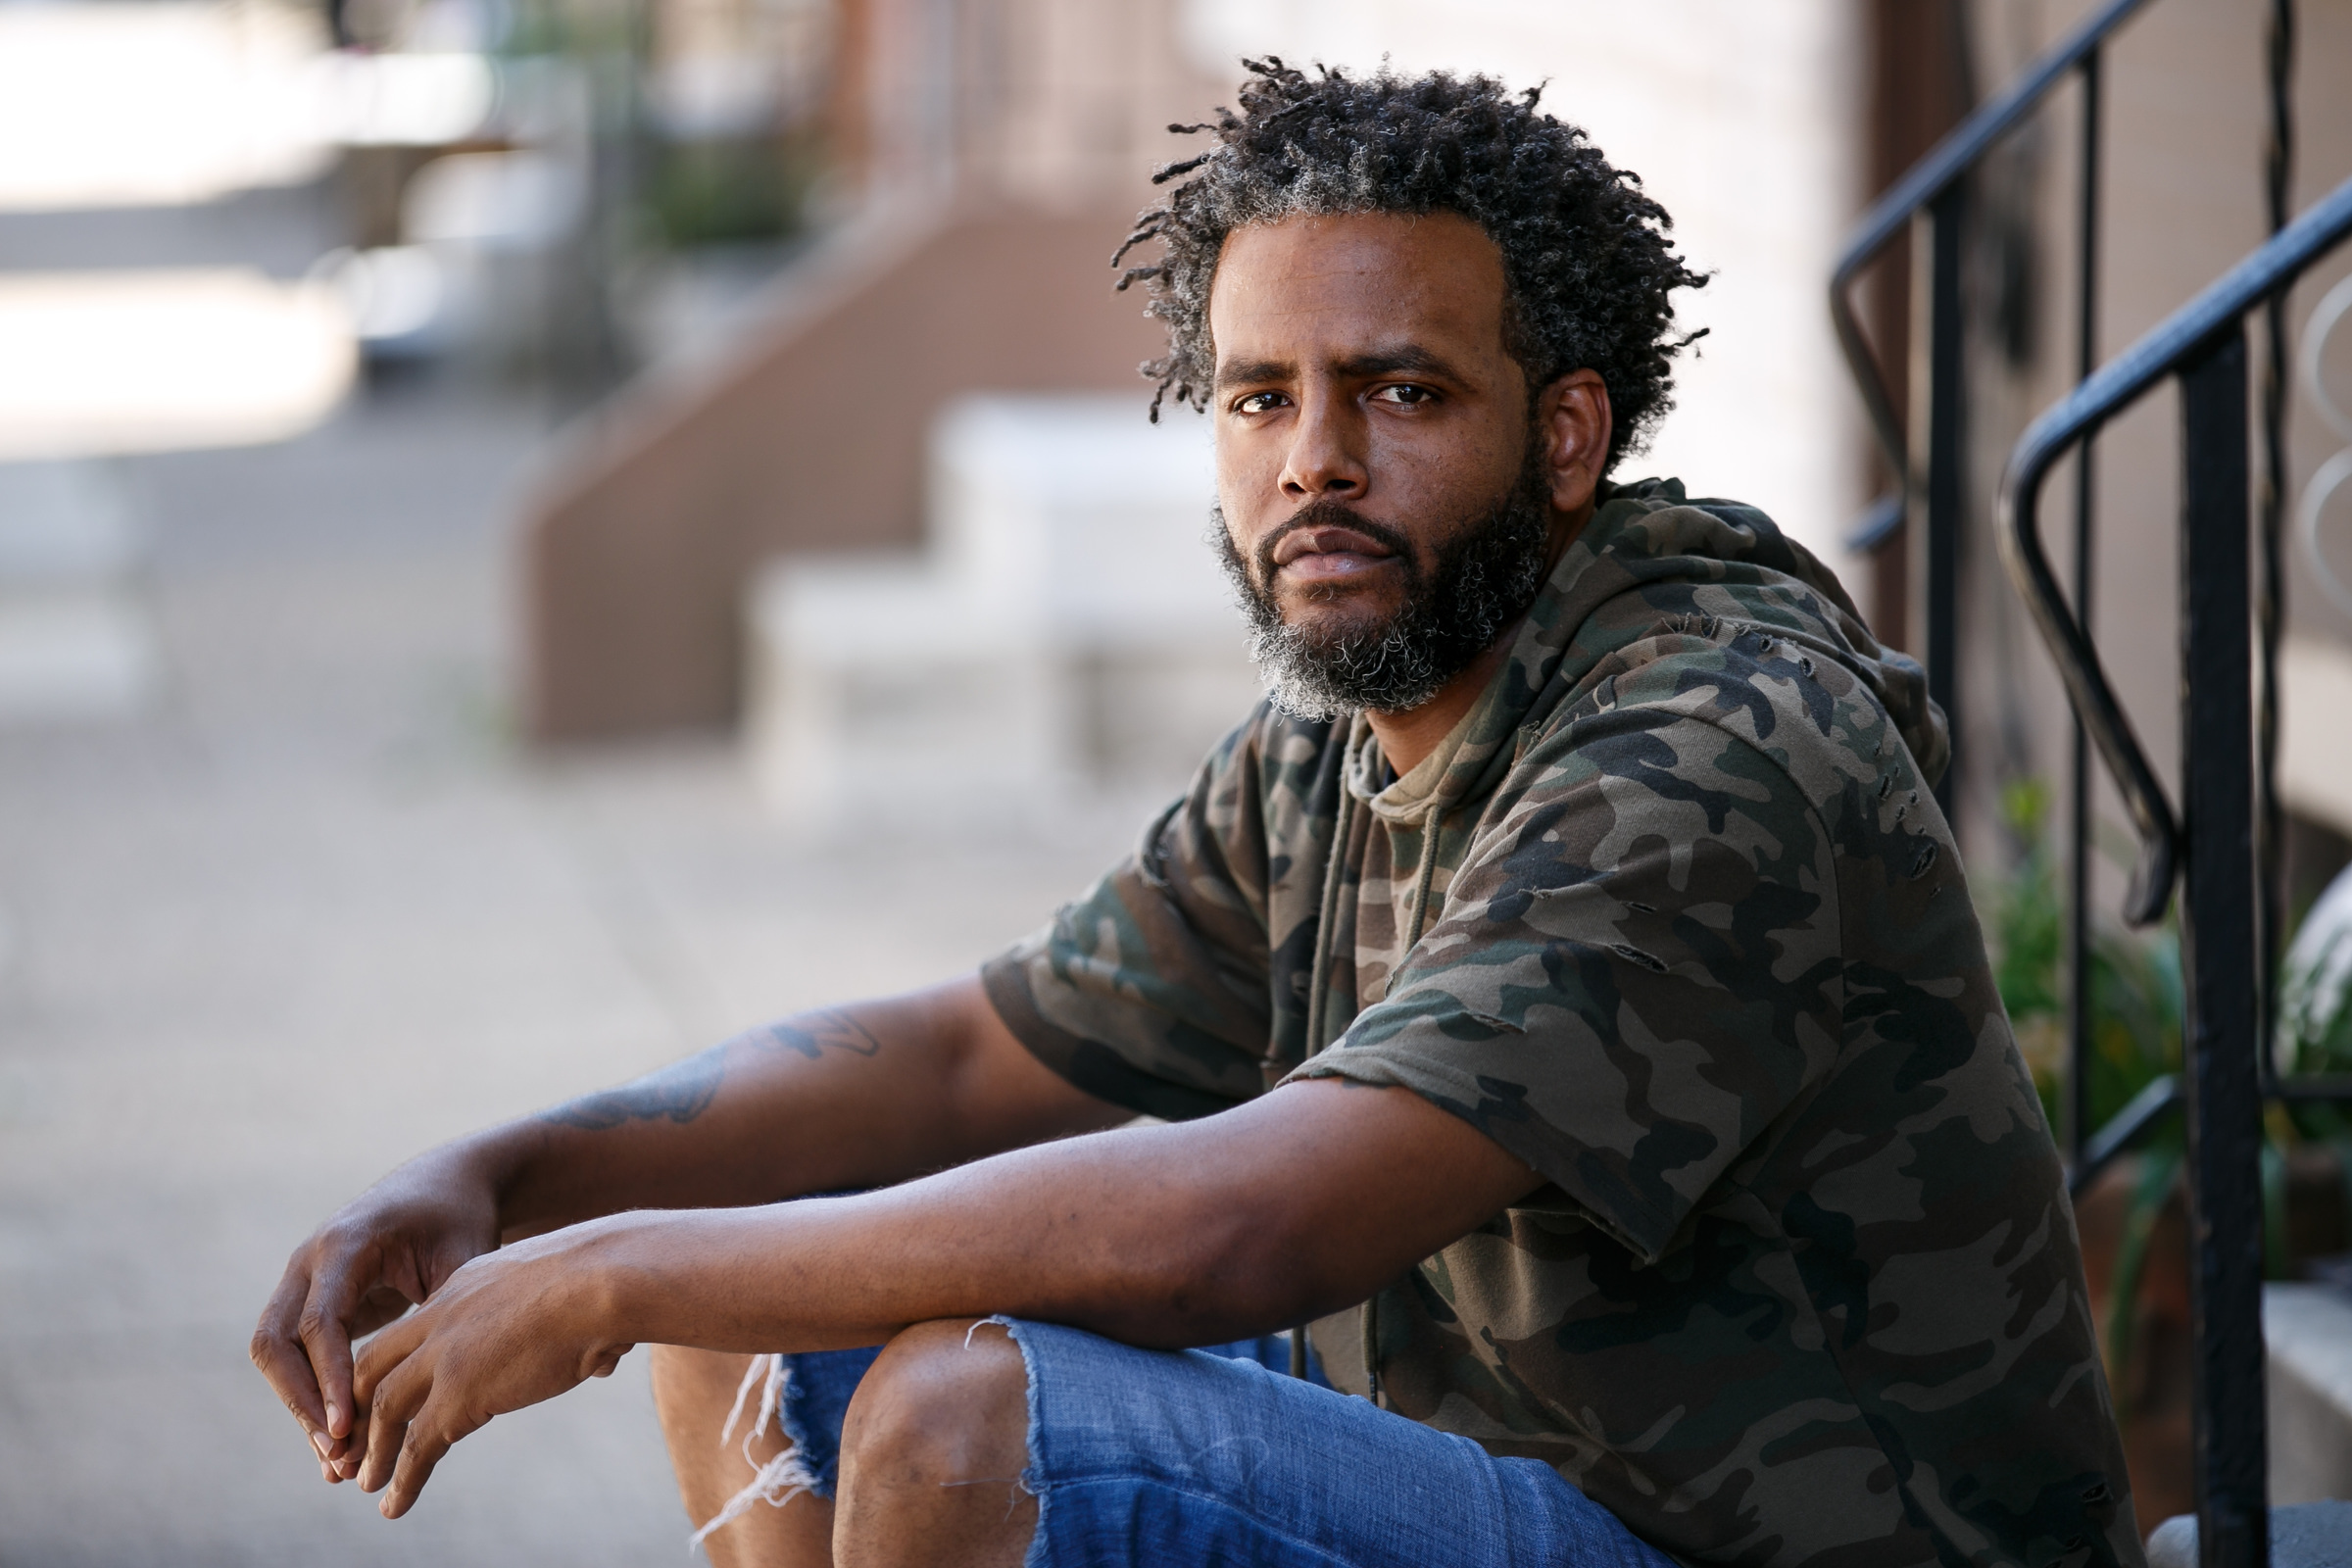 Benjamin Slater of East Mount Airy is shown Friday, June 29, 2018. He has filed a lawsuit against Dorney Park & Wildwater Kingdom alleging he was a victim of racial profiling on Father´s Day by an armed security officer.